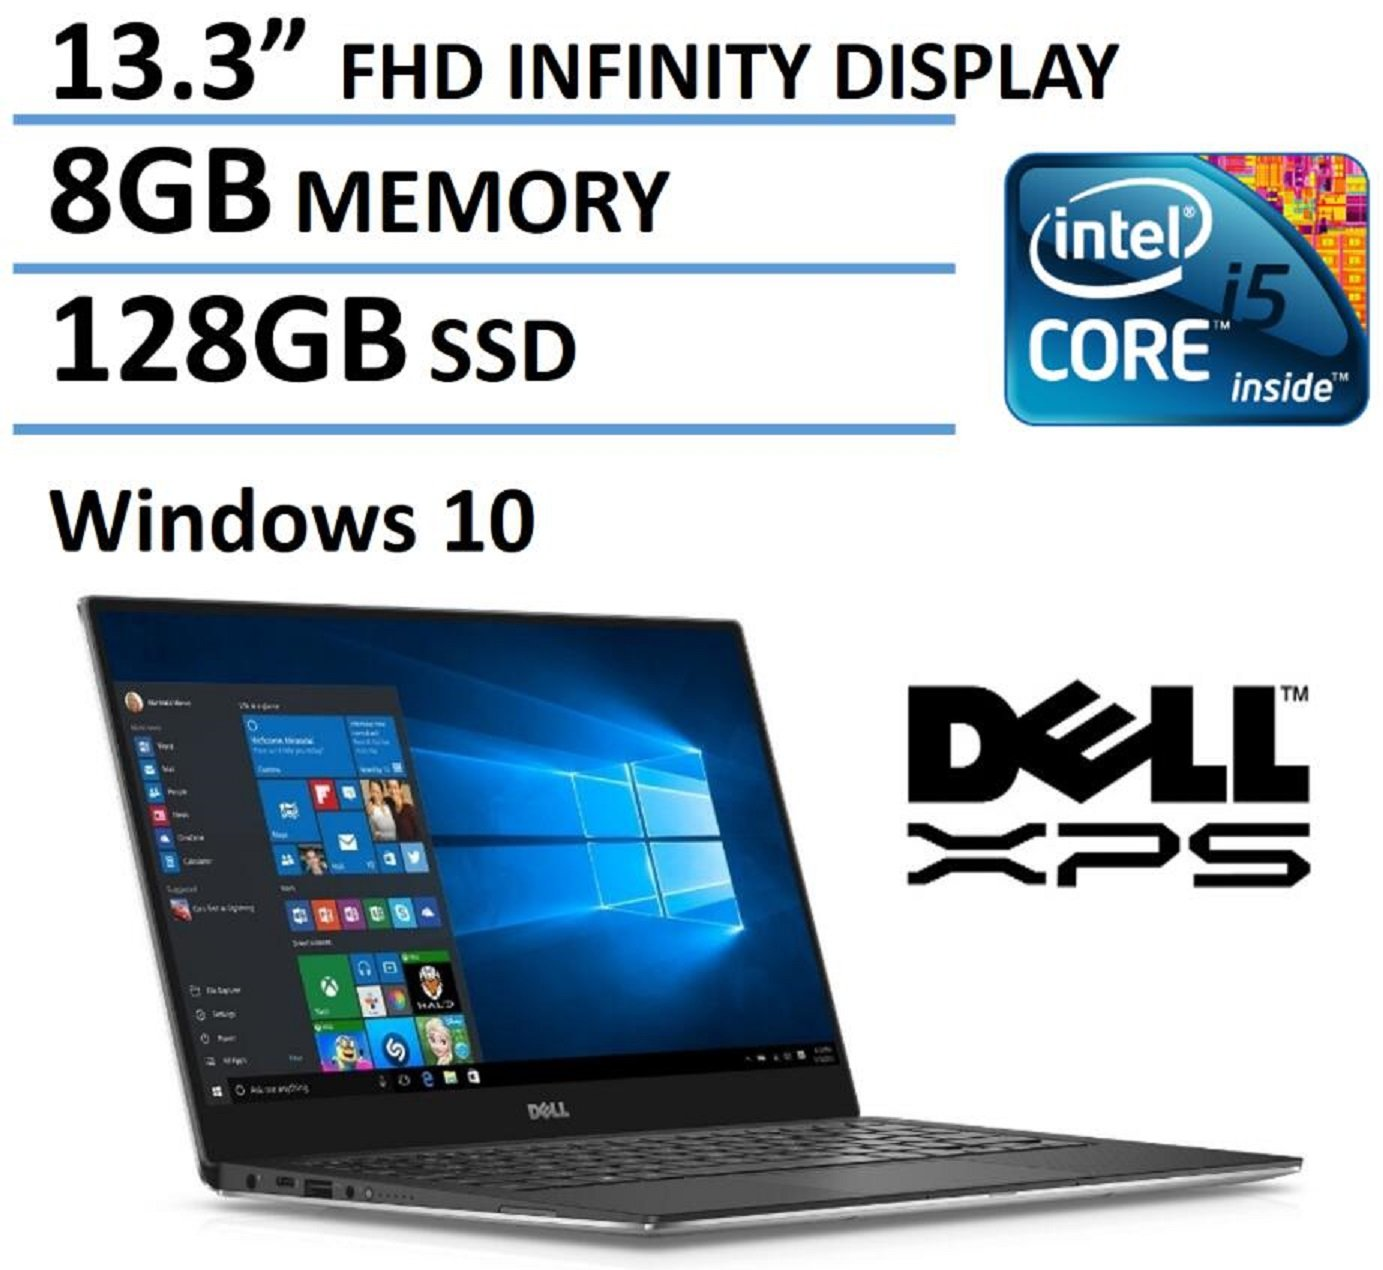 "2016 Newest Dell XPS 13 High Performance Laptop with 13.3"" FHD IPS Infinity Borderless Display, Intel Core i5-6200U Processor, 8GB RAM, 128GB SSD, 11 hours battery life, Backlit Keyboard, Windows 10"